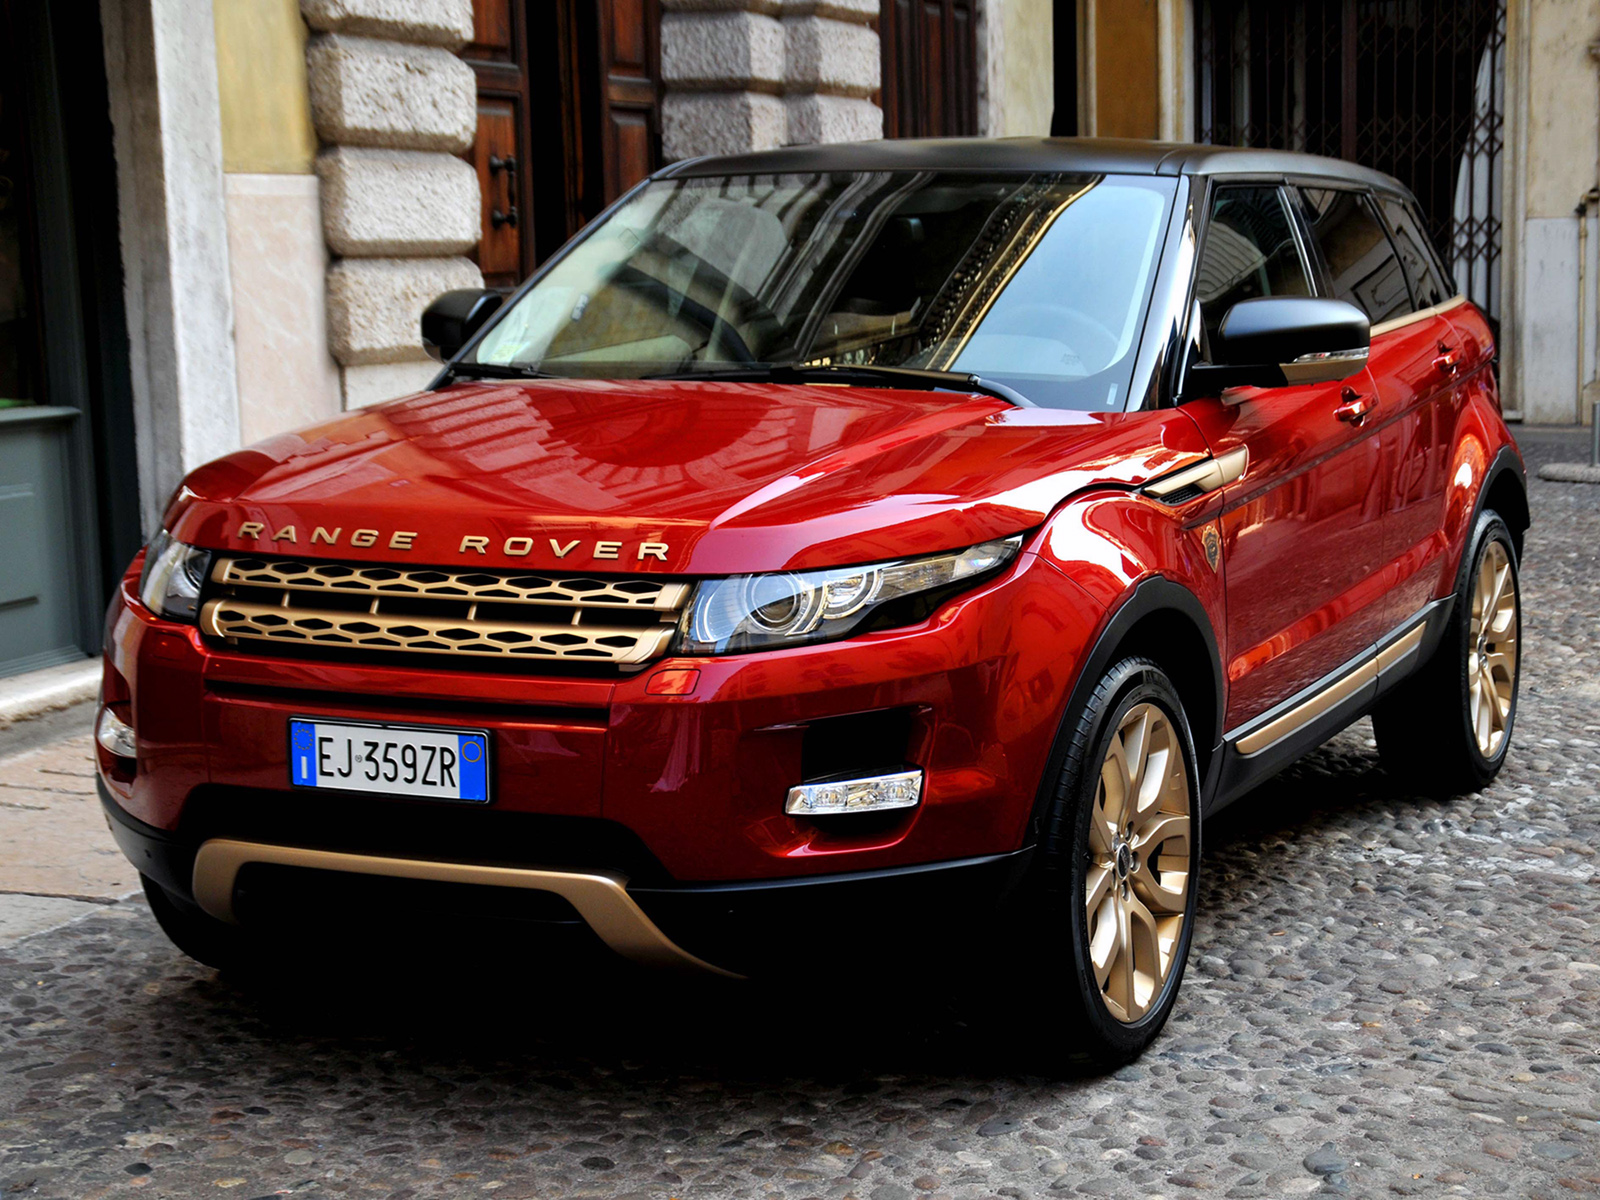 Land Rover Range Rover Evoque picture